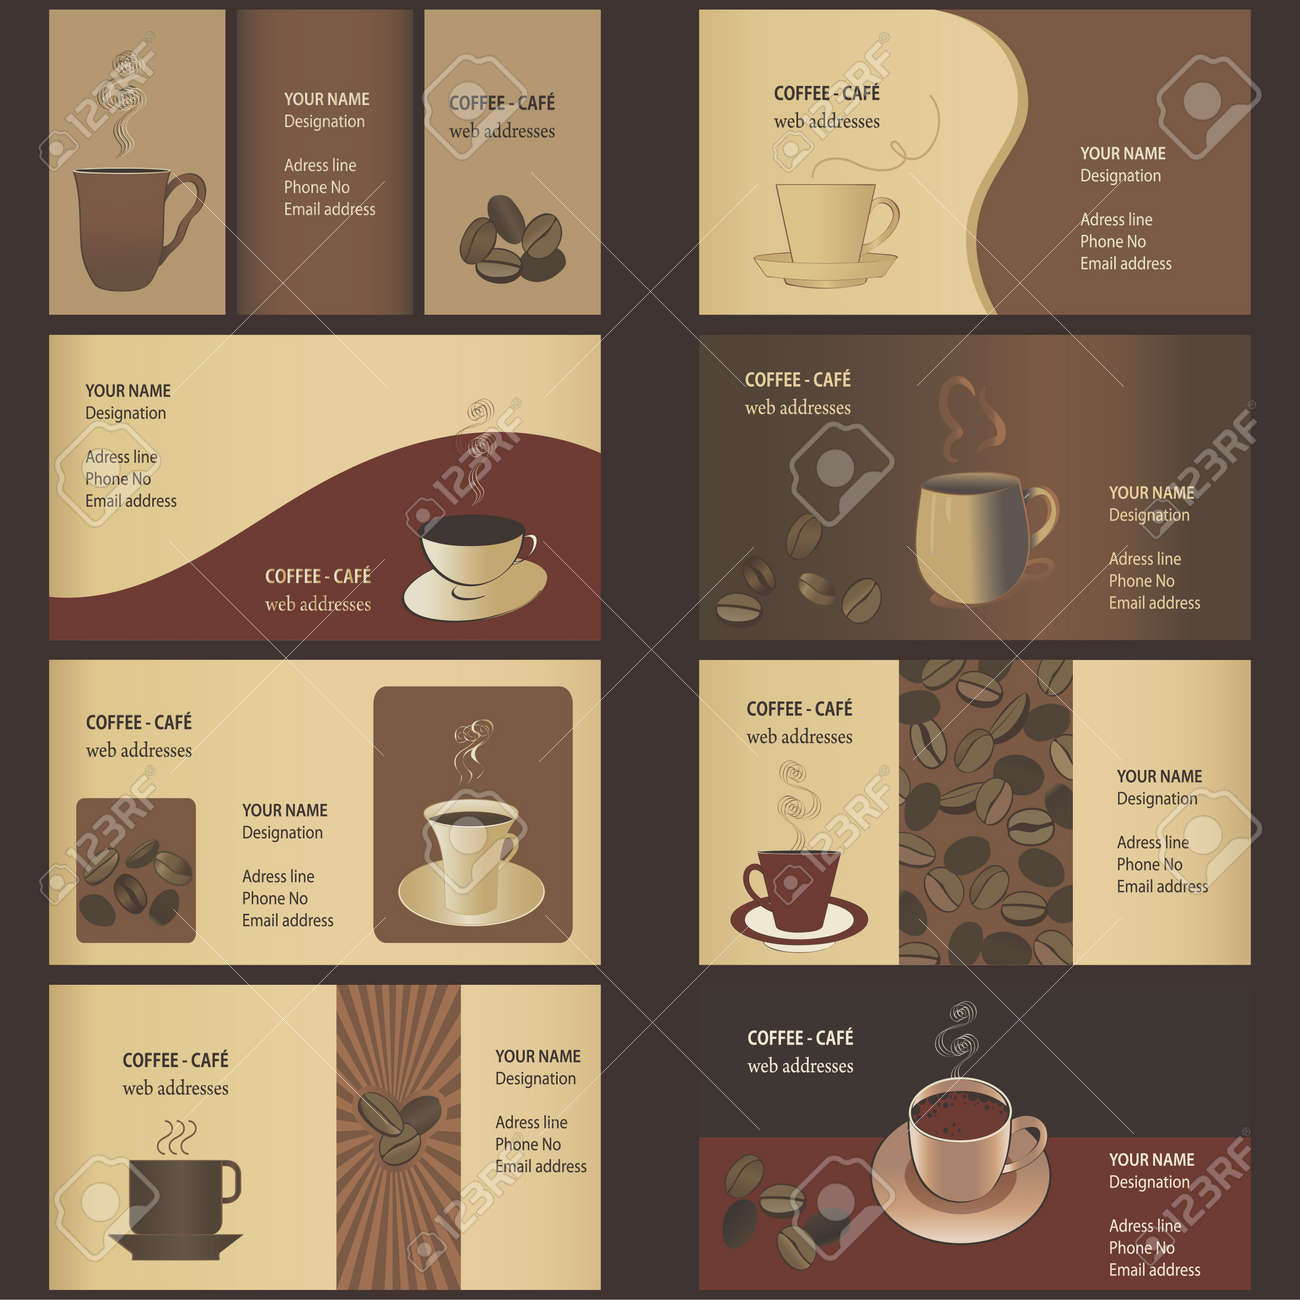 Coffee business card templates 8 set royalty free cliparts coffee business card templates 8 set stock vector 11663614 flashek Gallery